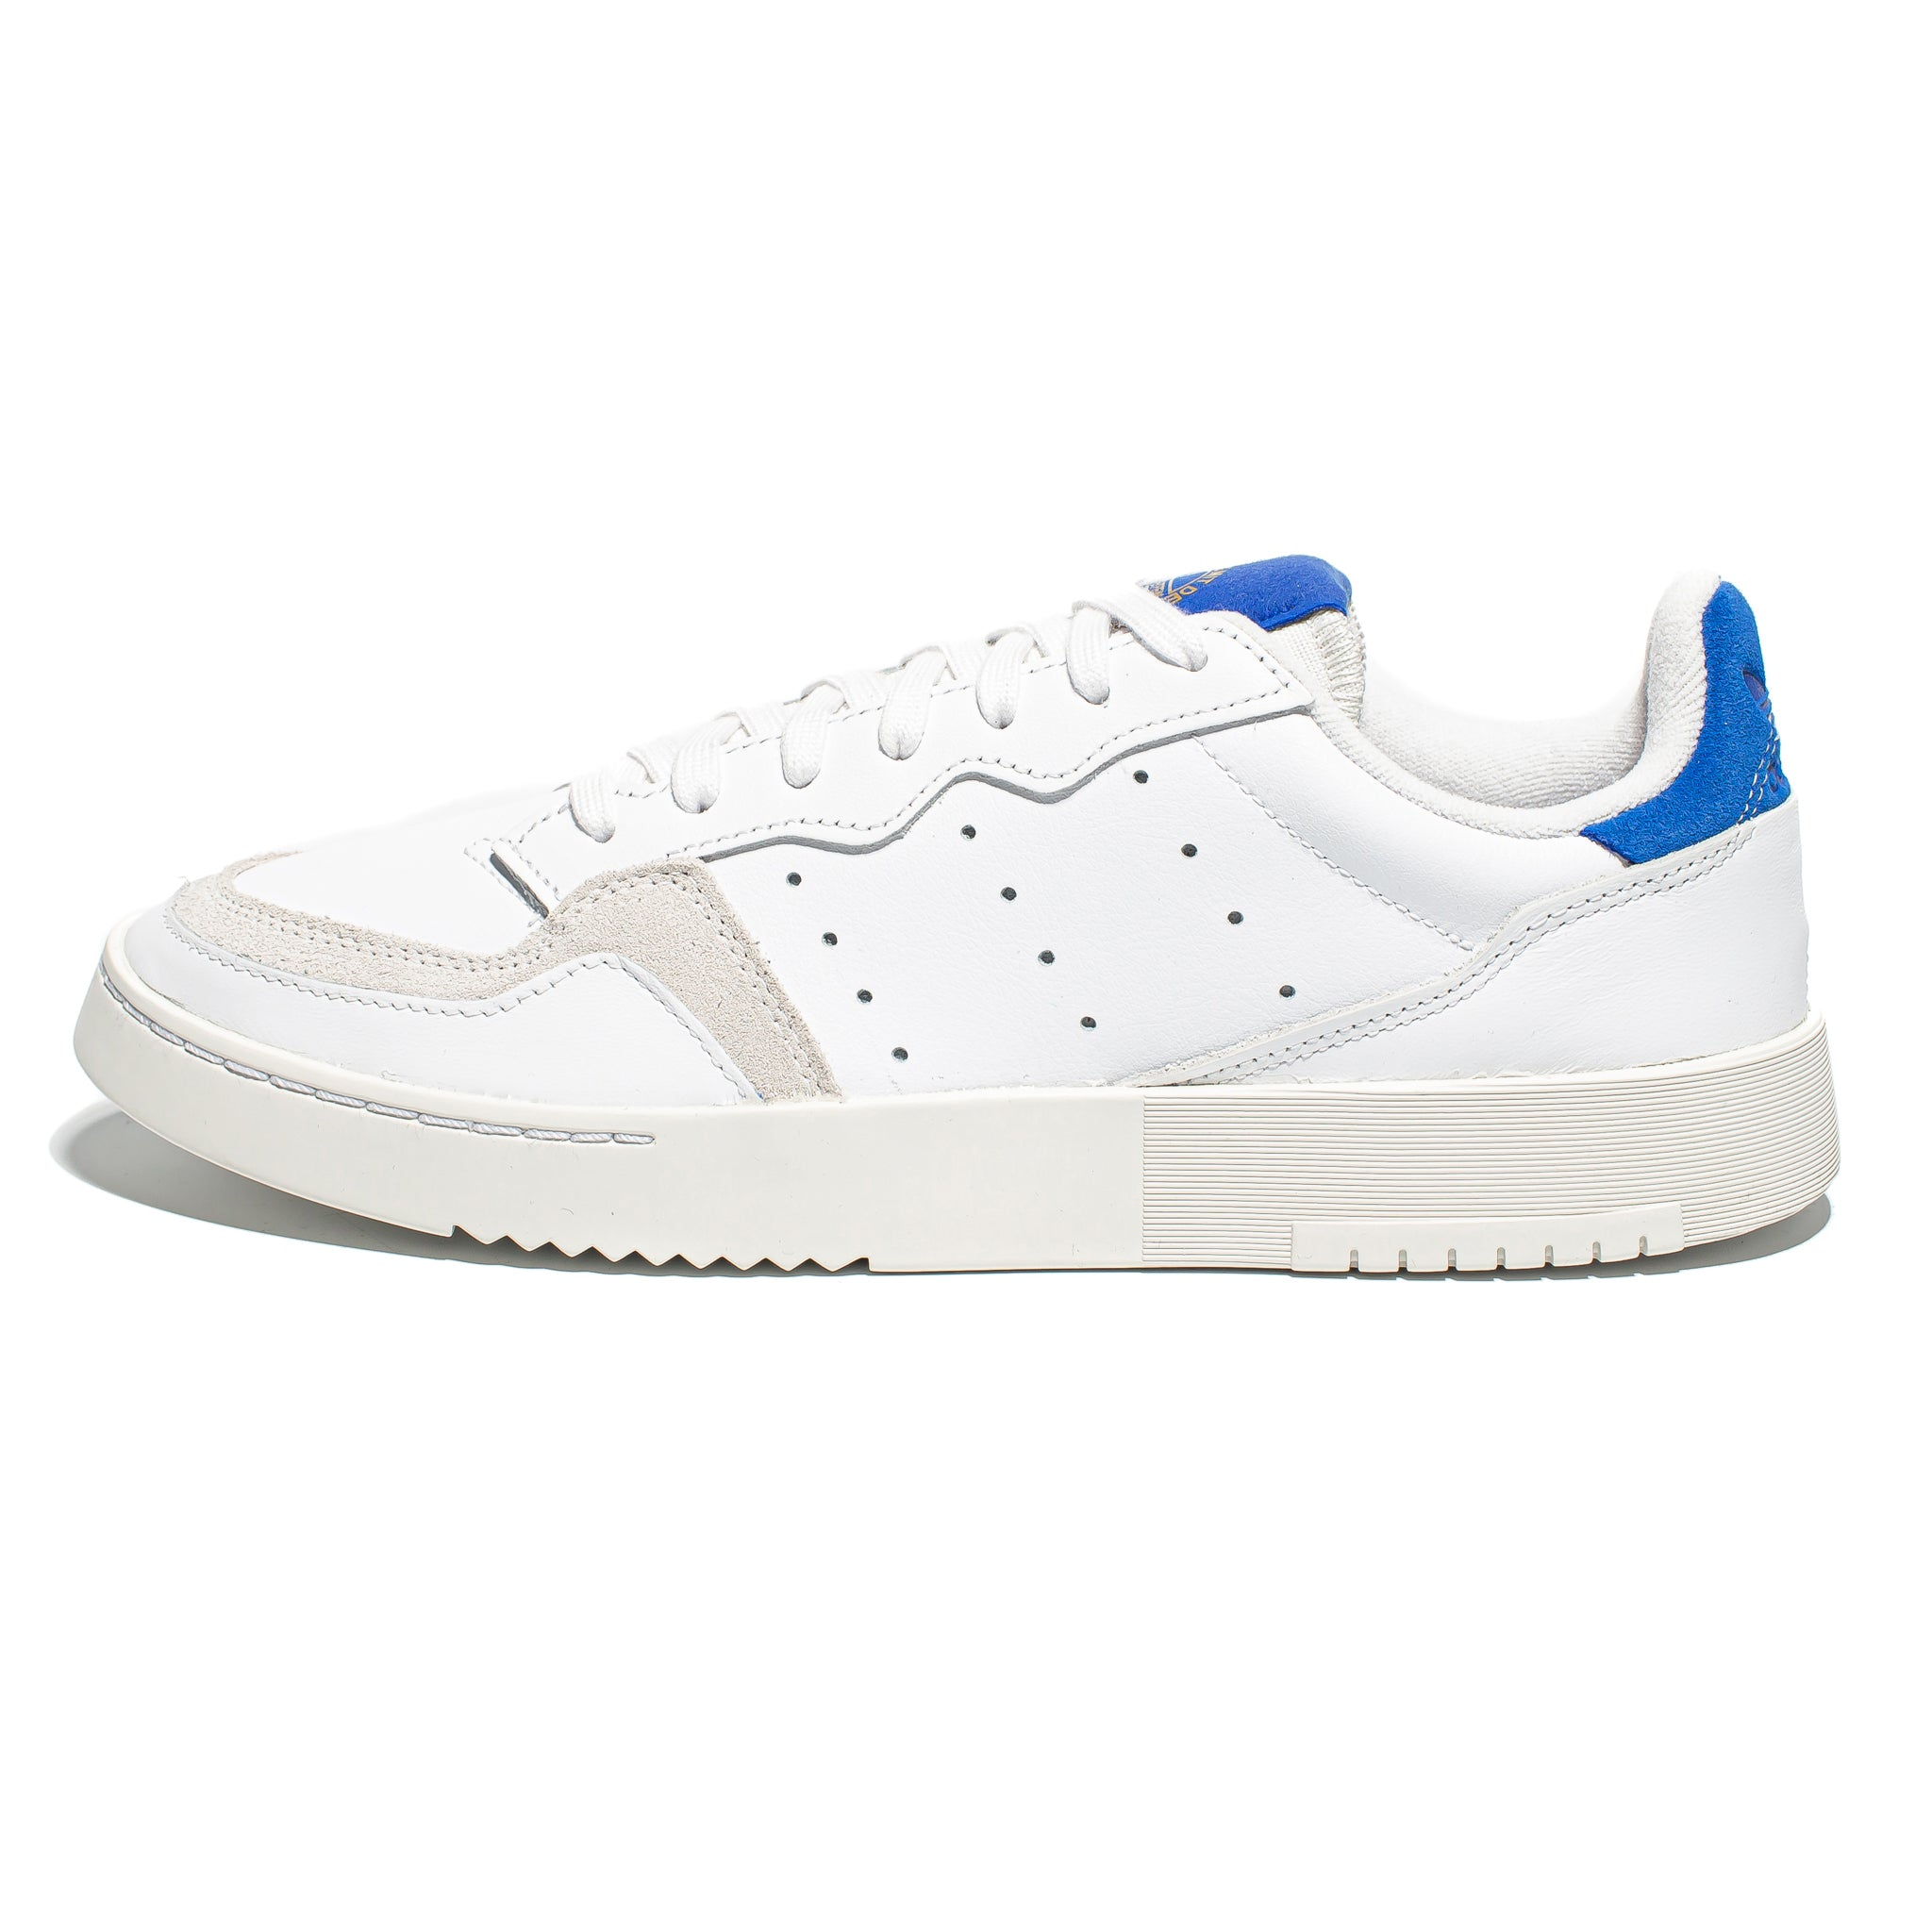 Adidas Supercourt Cloud White/Team Royal Blue